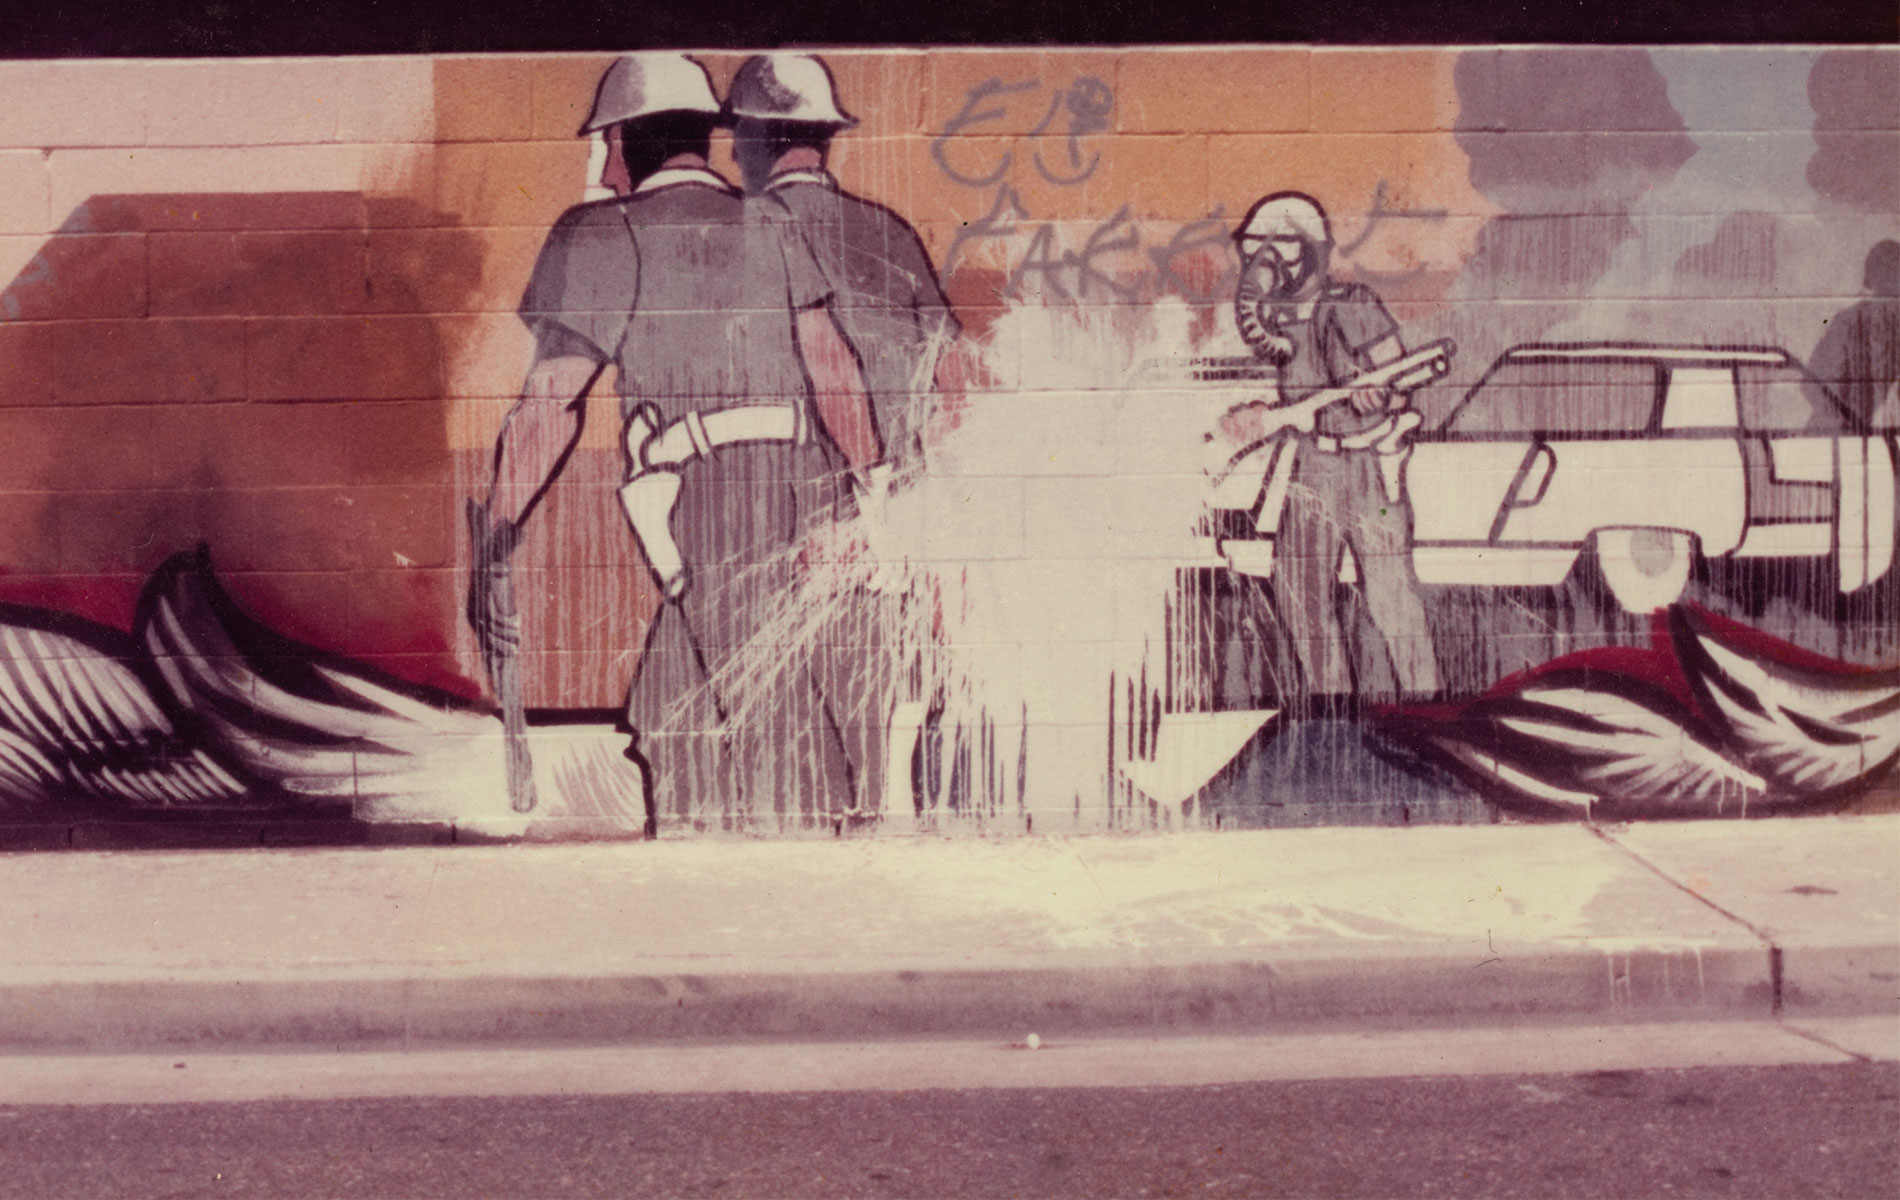 <h1>Mural detail, <em>Fountain Valley Mural</em> c. 1976</h1>